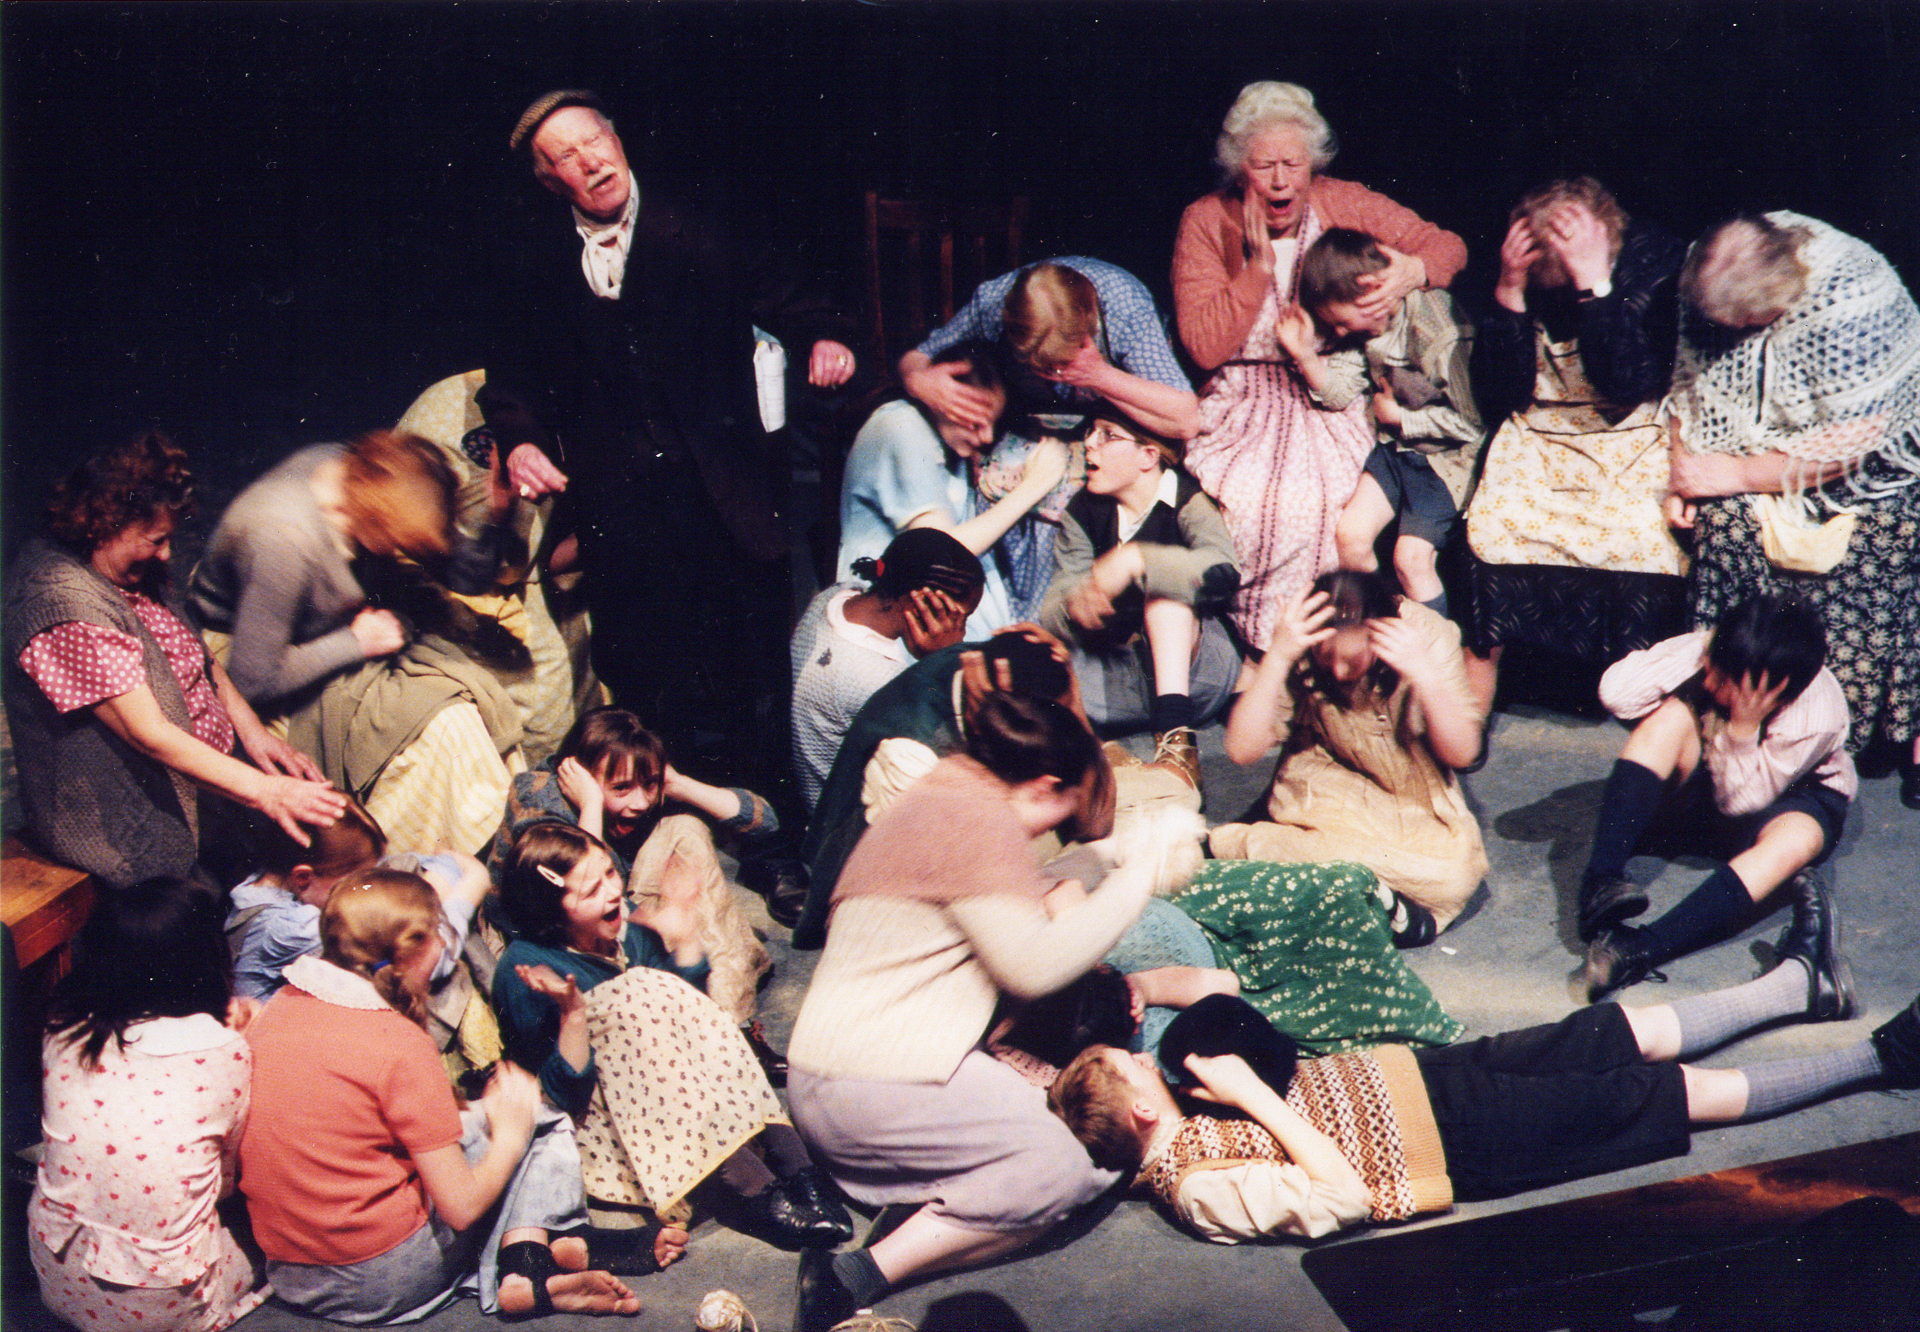 Sharing humanity through reminiscence theatre